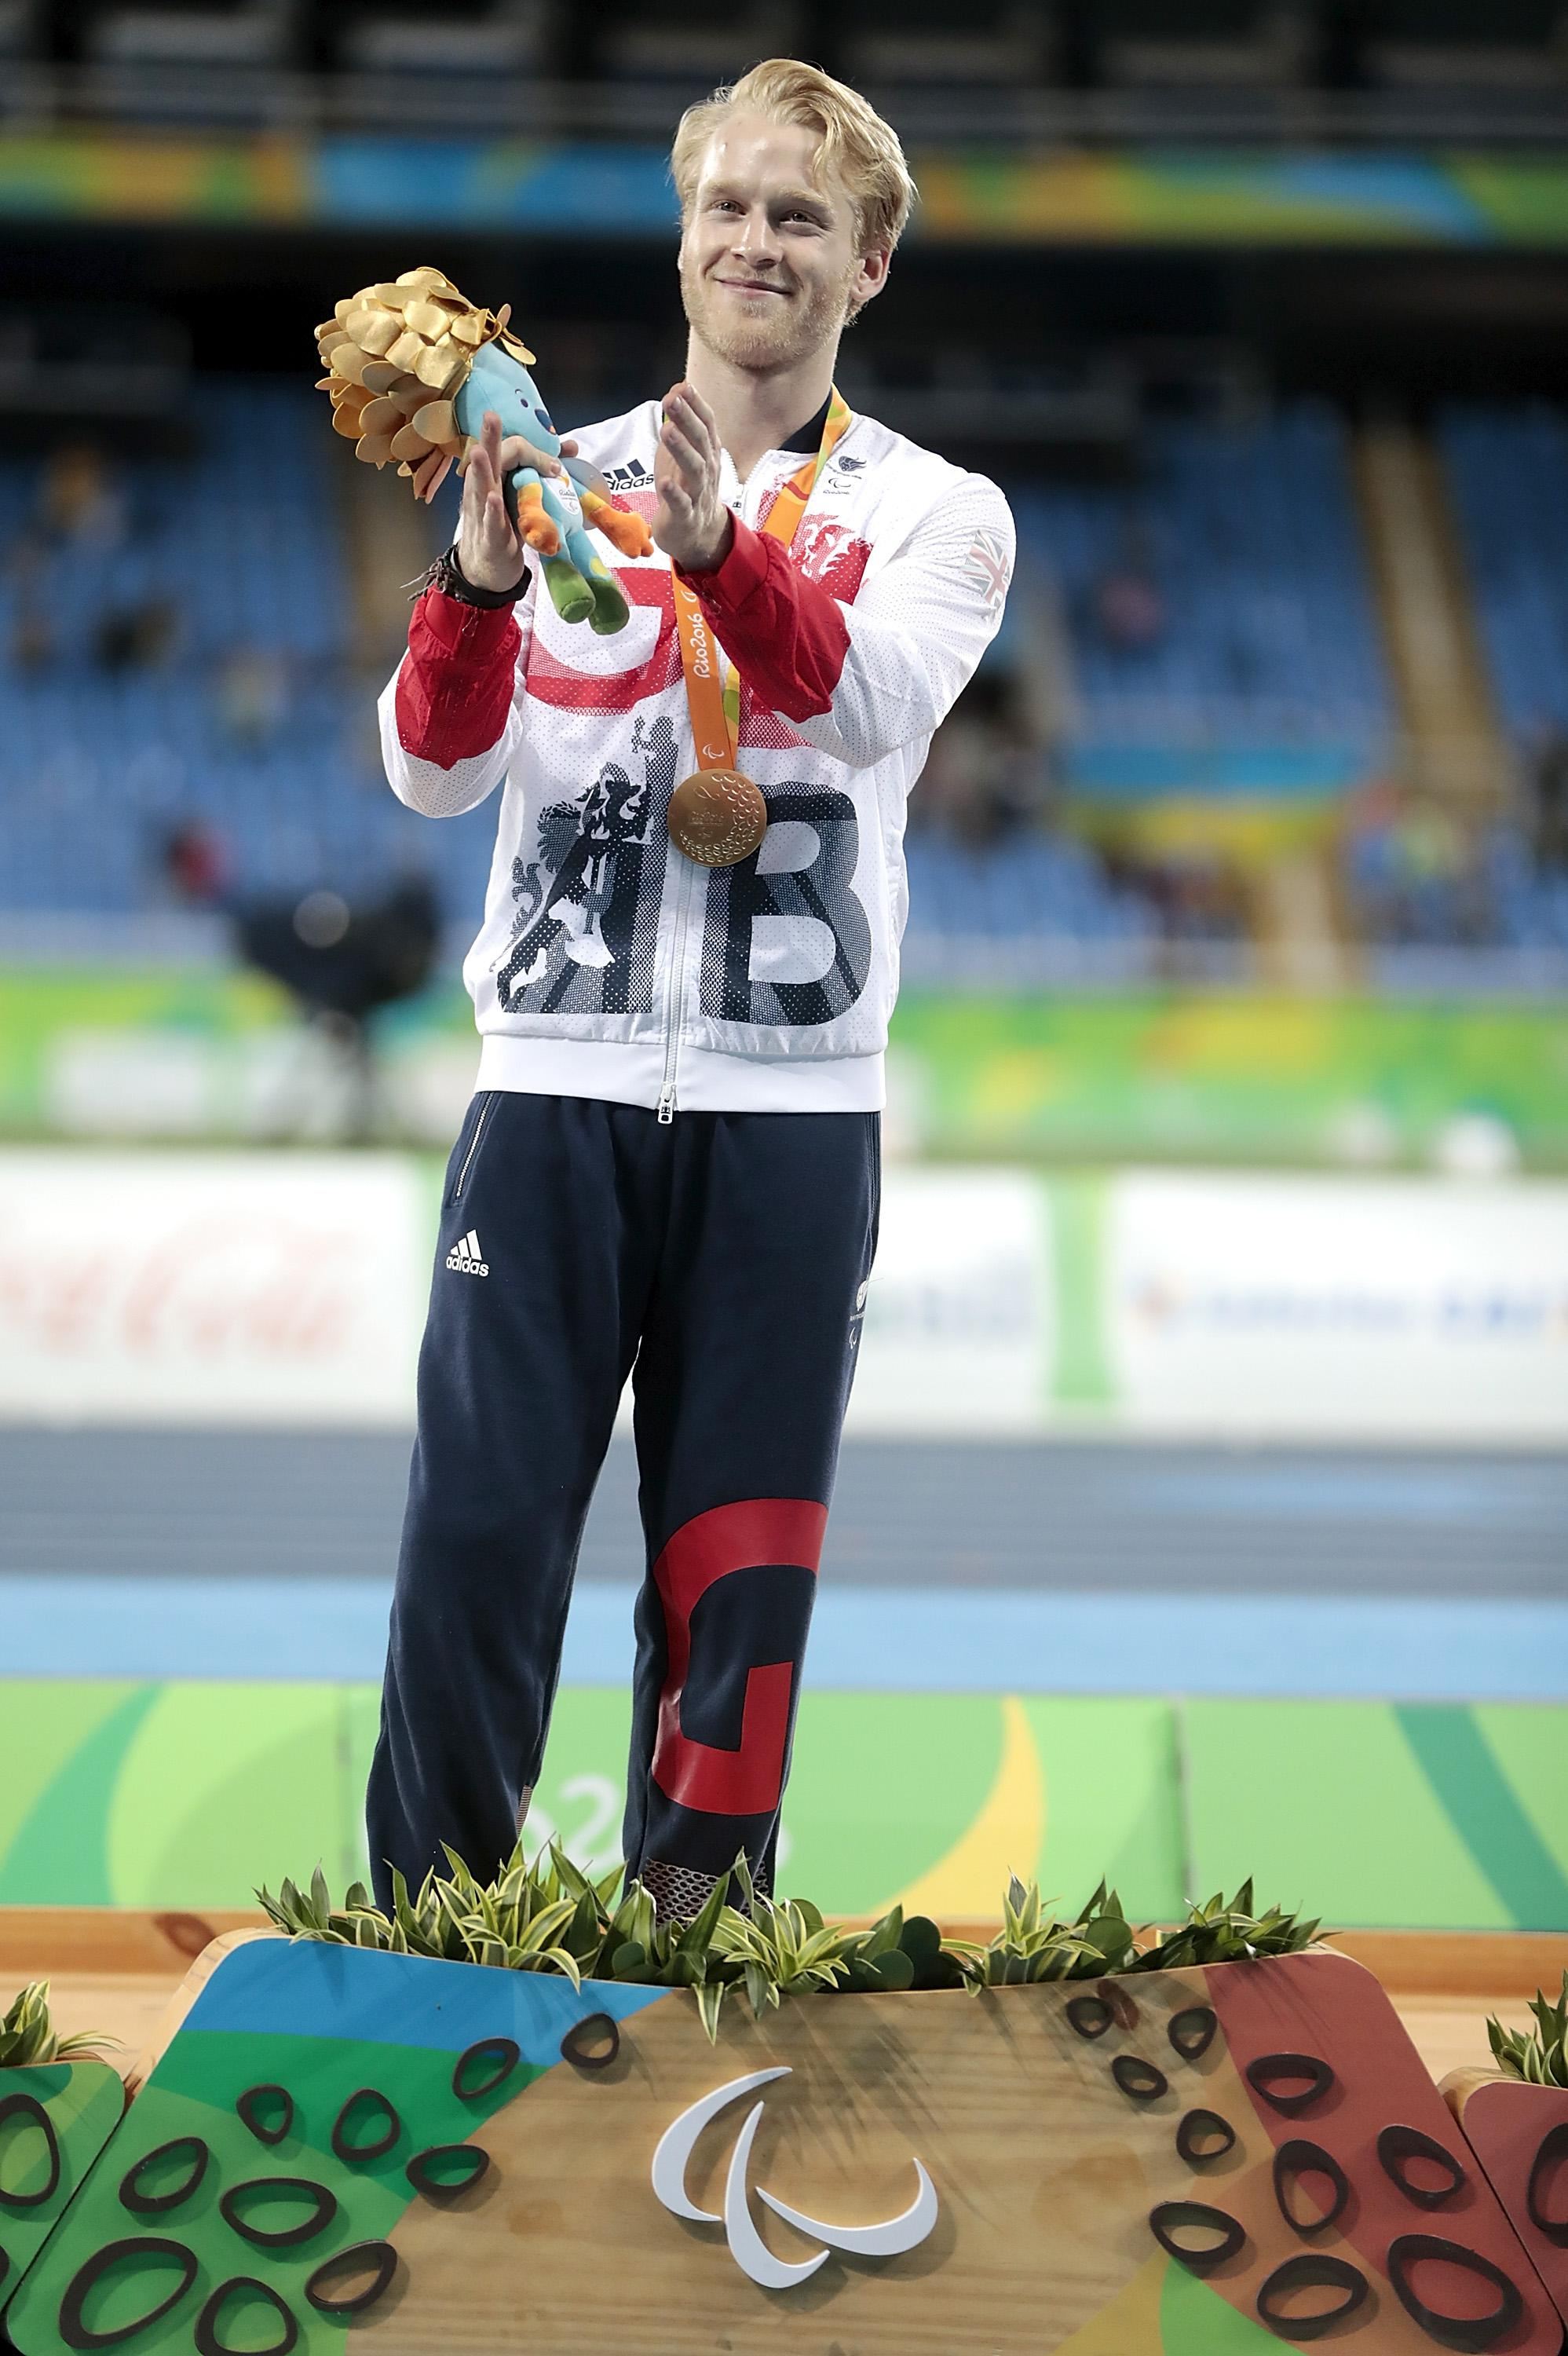 Peacock then defended his Paralympic gold at the 2016 Rio Olympics - even bettering his 100m time